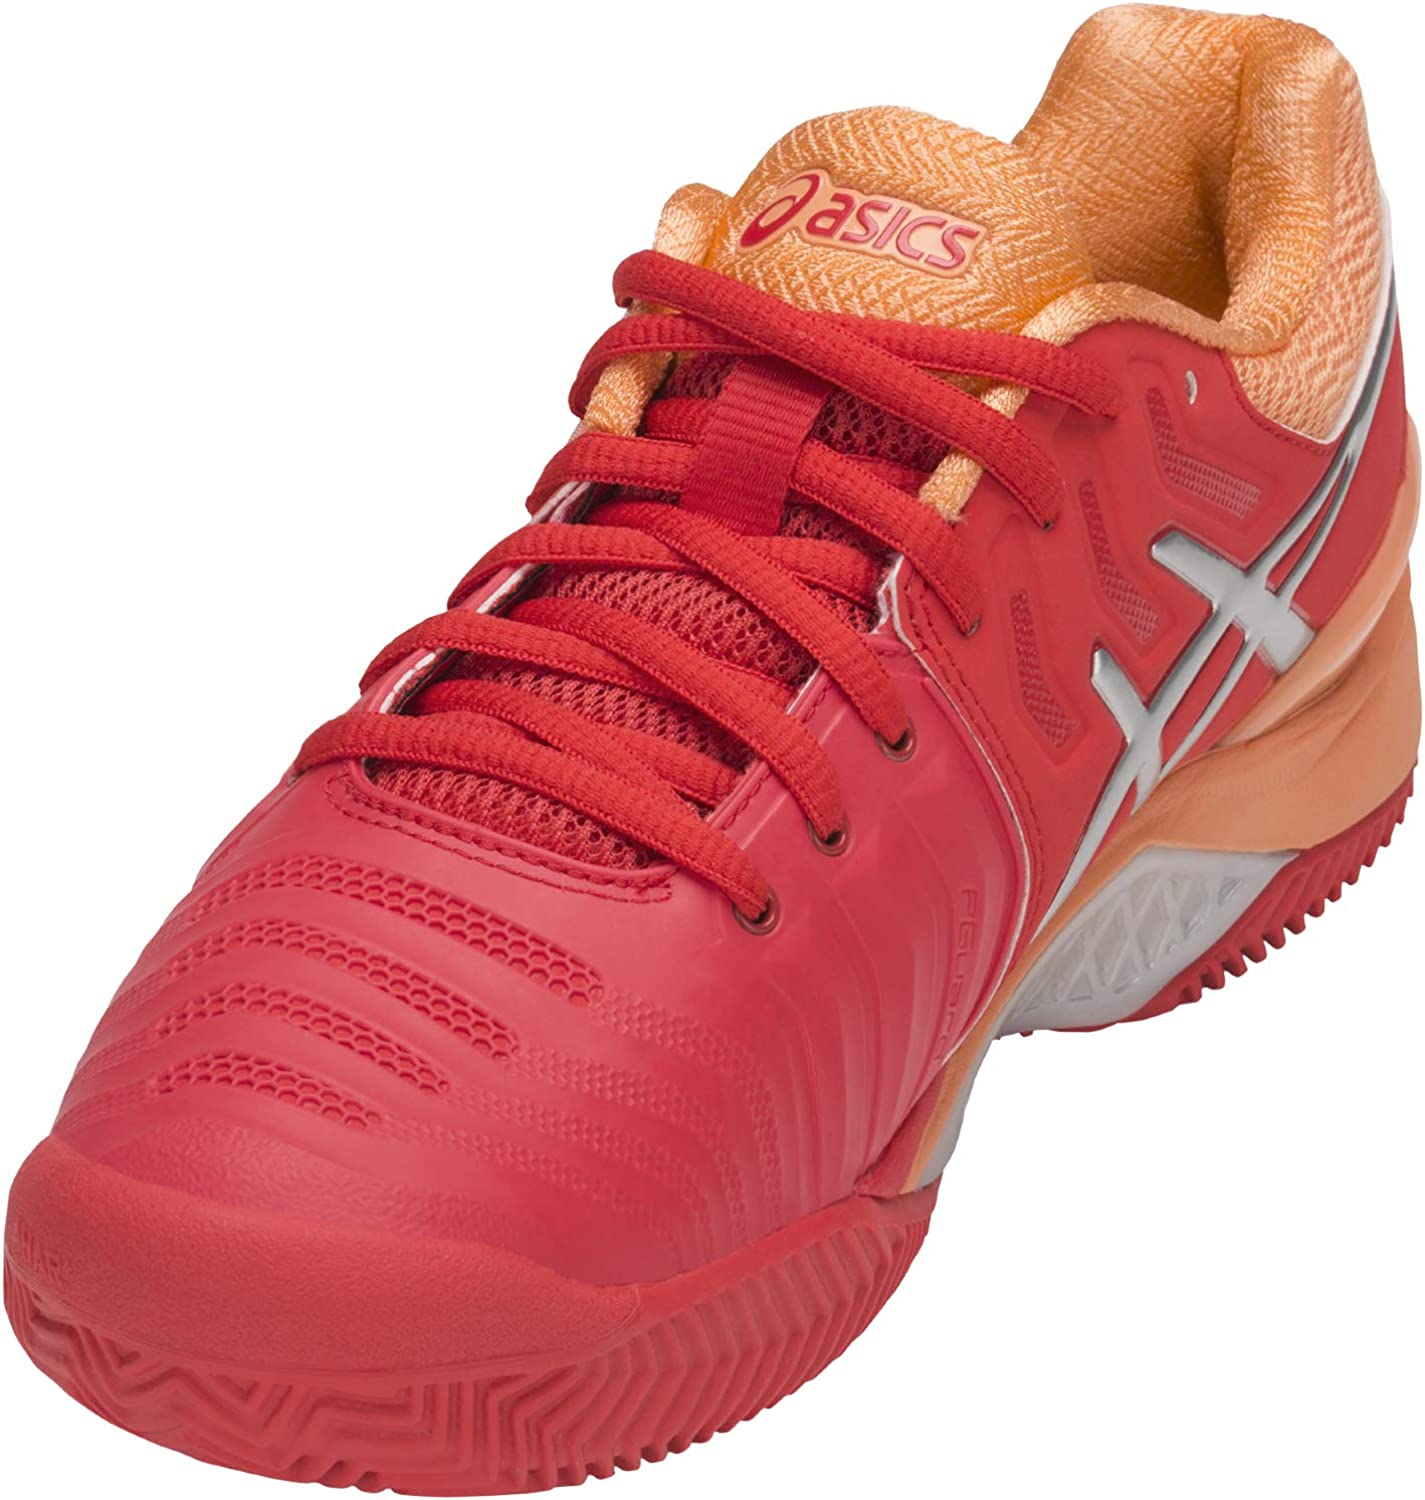 ASICS Damen Gel-Resolution 7 Clay Tennisschuhe, bleu Glacial/Argent/Blanc rouge flash/argent